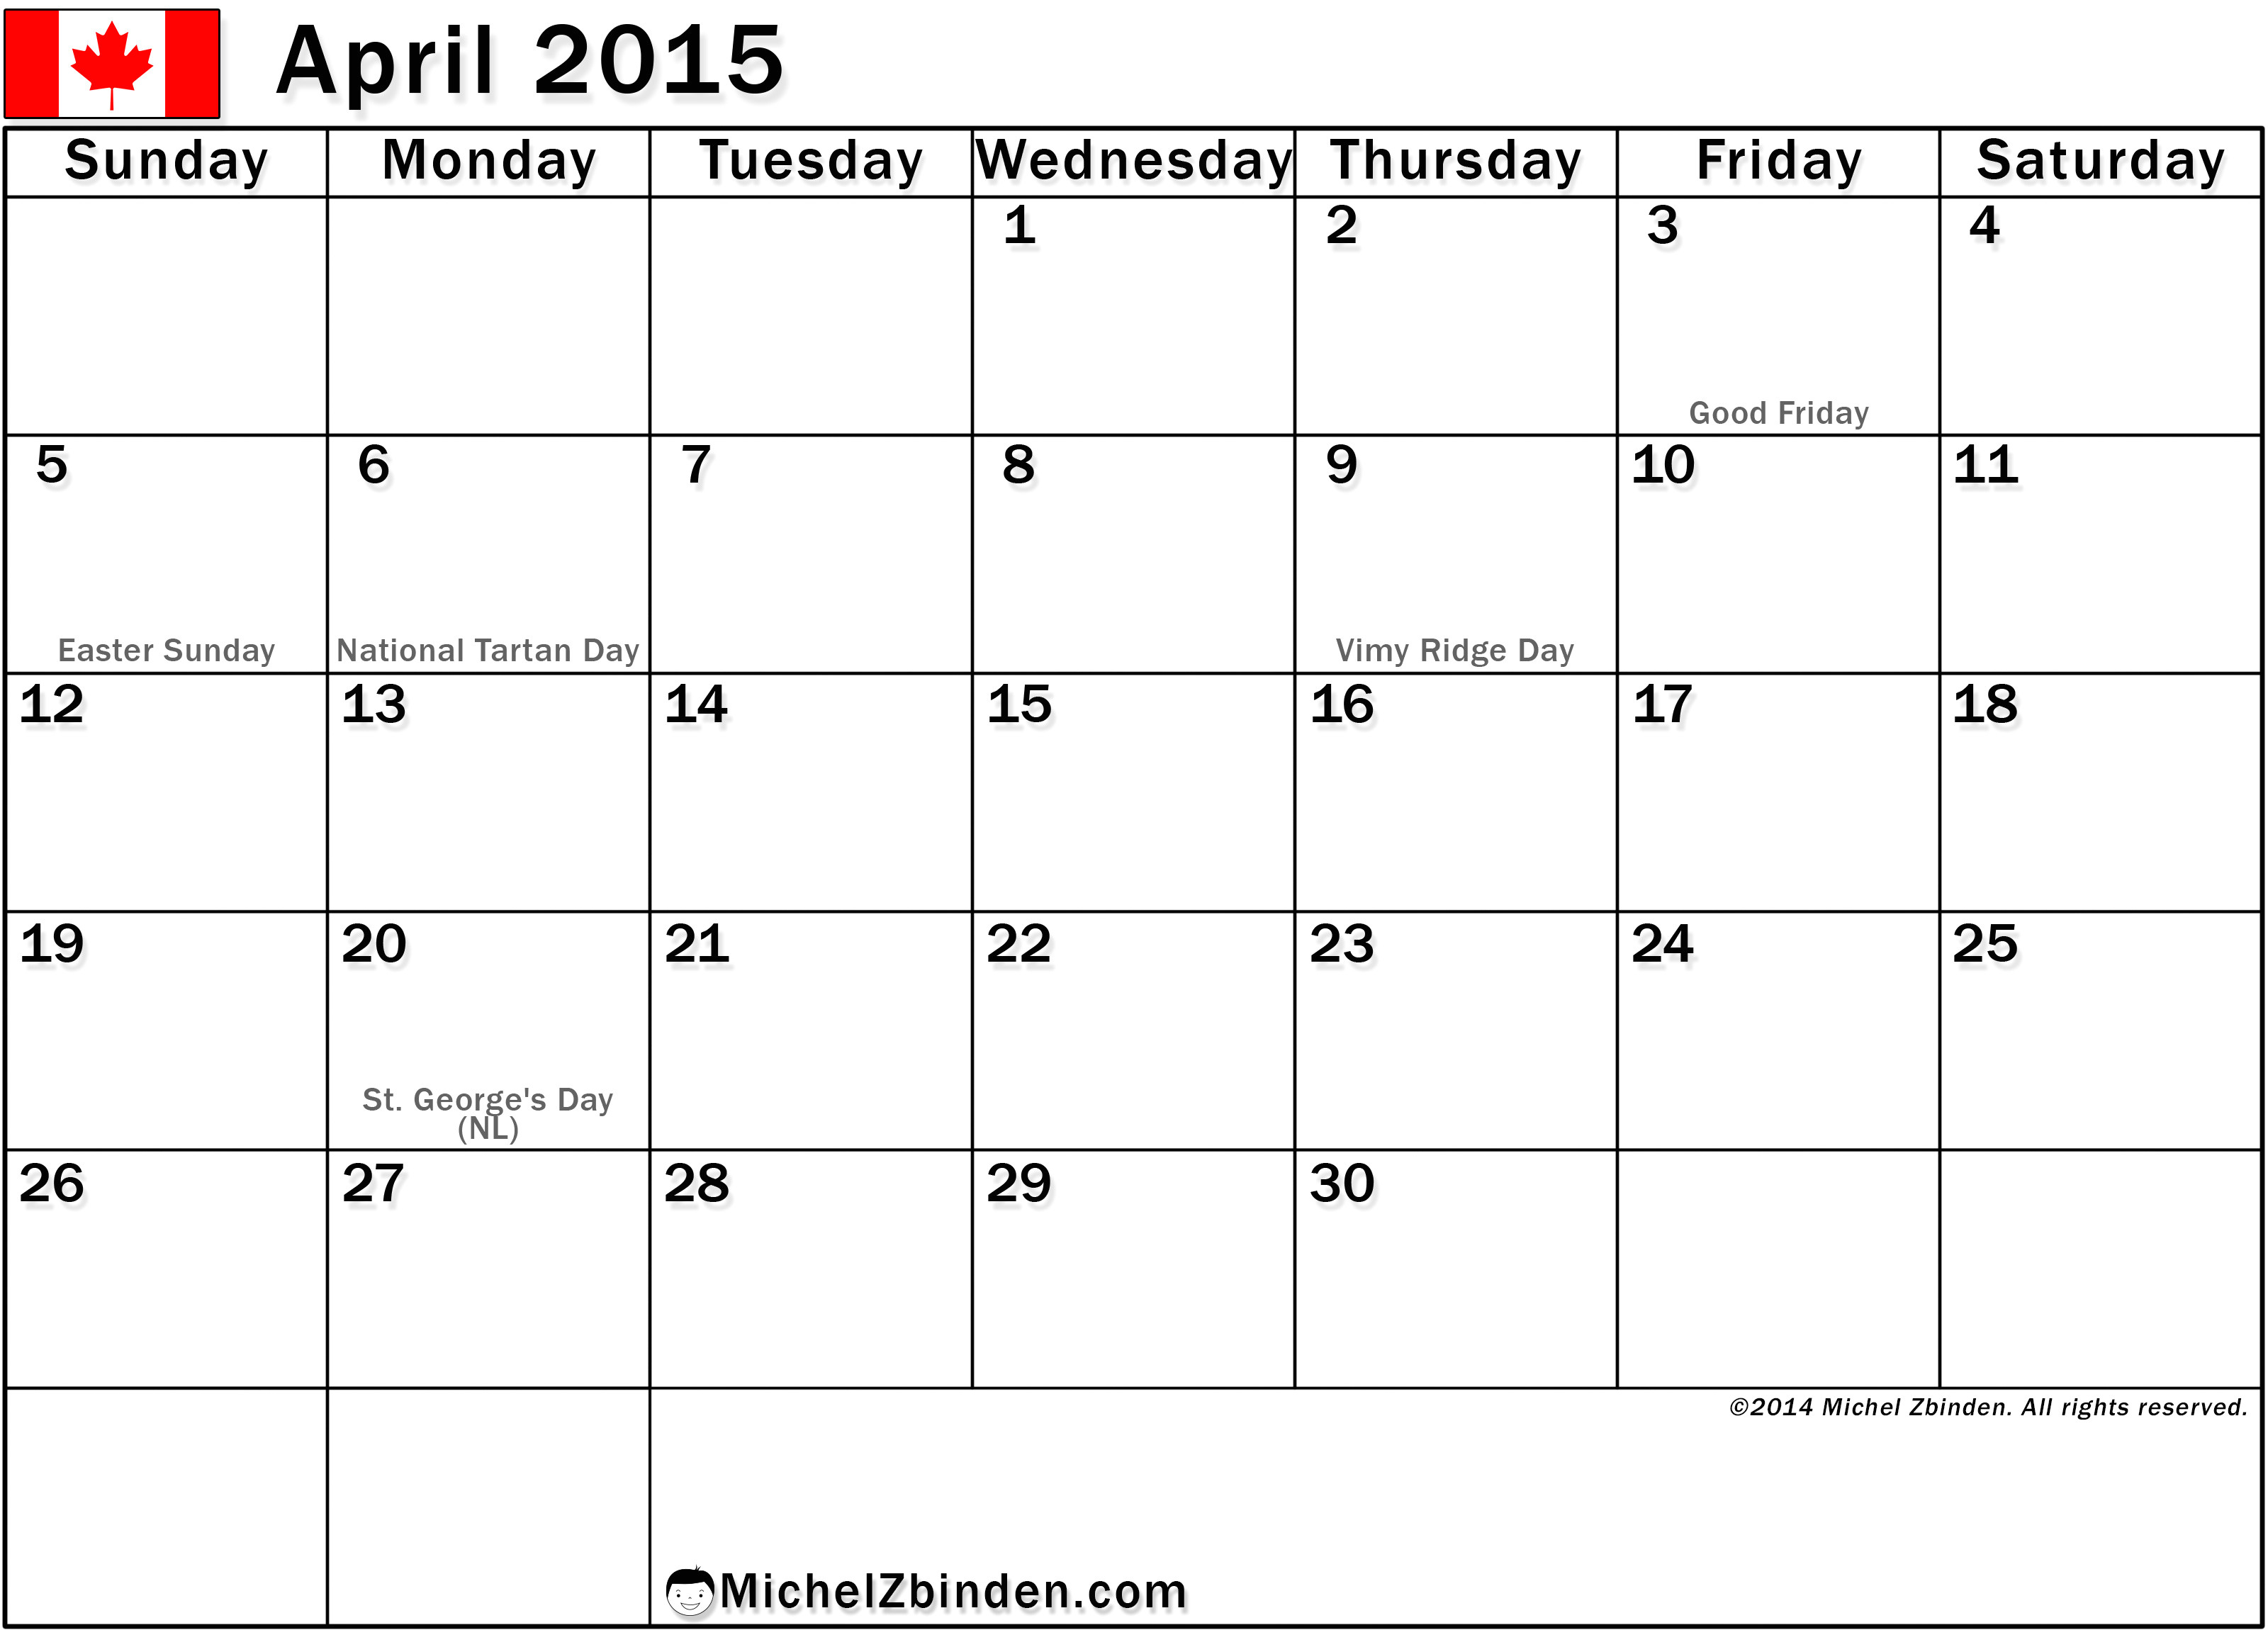 2015 Calendar Template with Canadian Holidays April 2015 Holidays Www Imgkid Com the Image Kid Has It